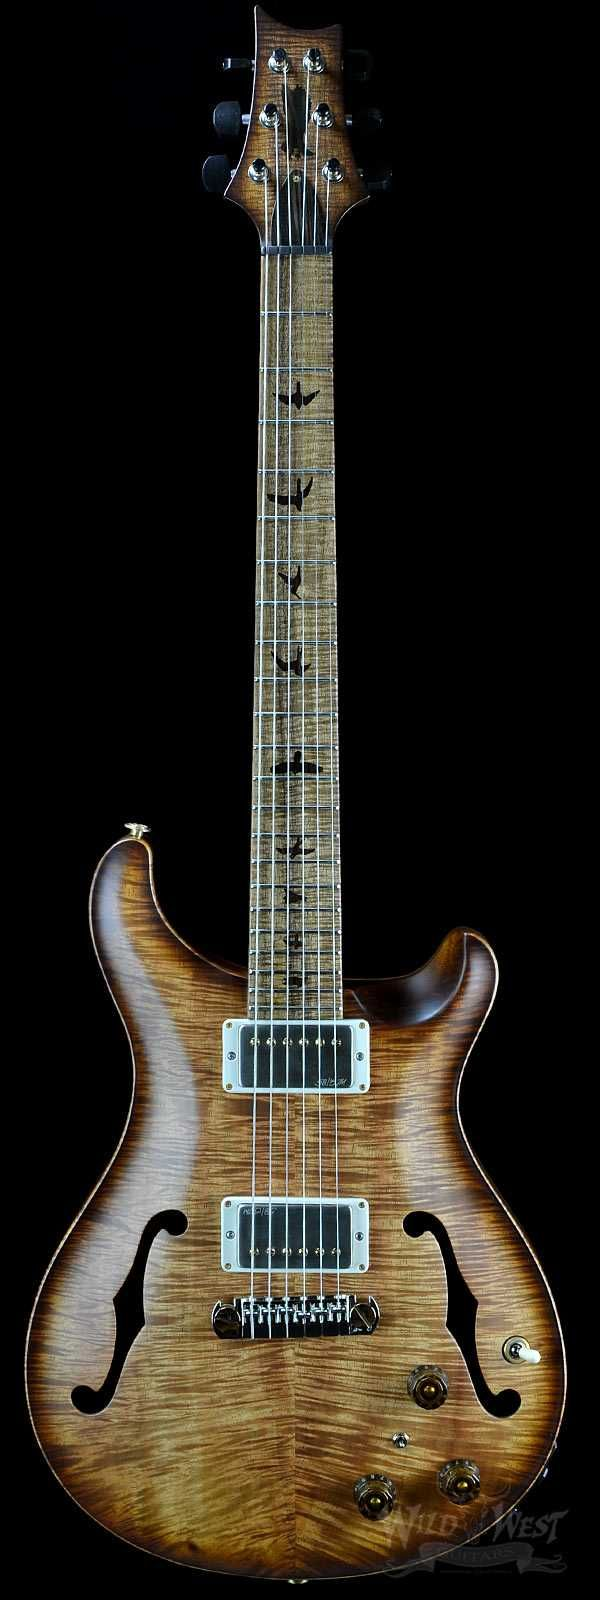 PRS Paul Reed Smith Hollowbody II Private Stock 5674 Natural Satin Koa Smoked Burst